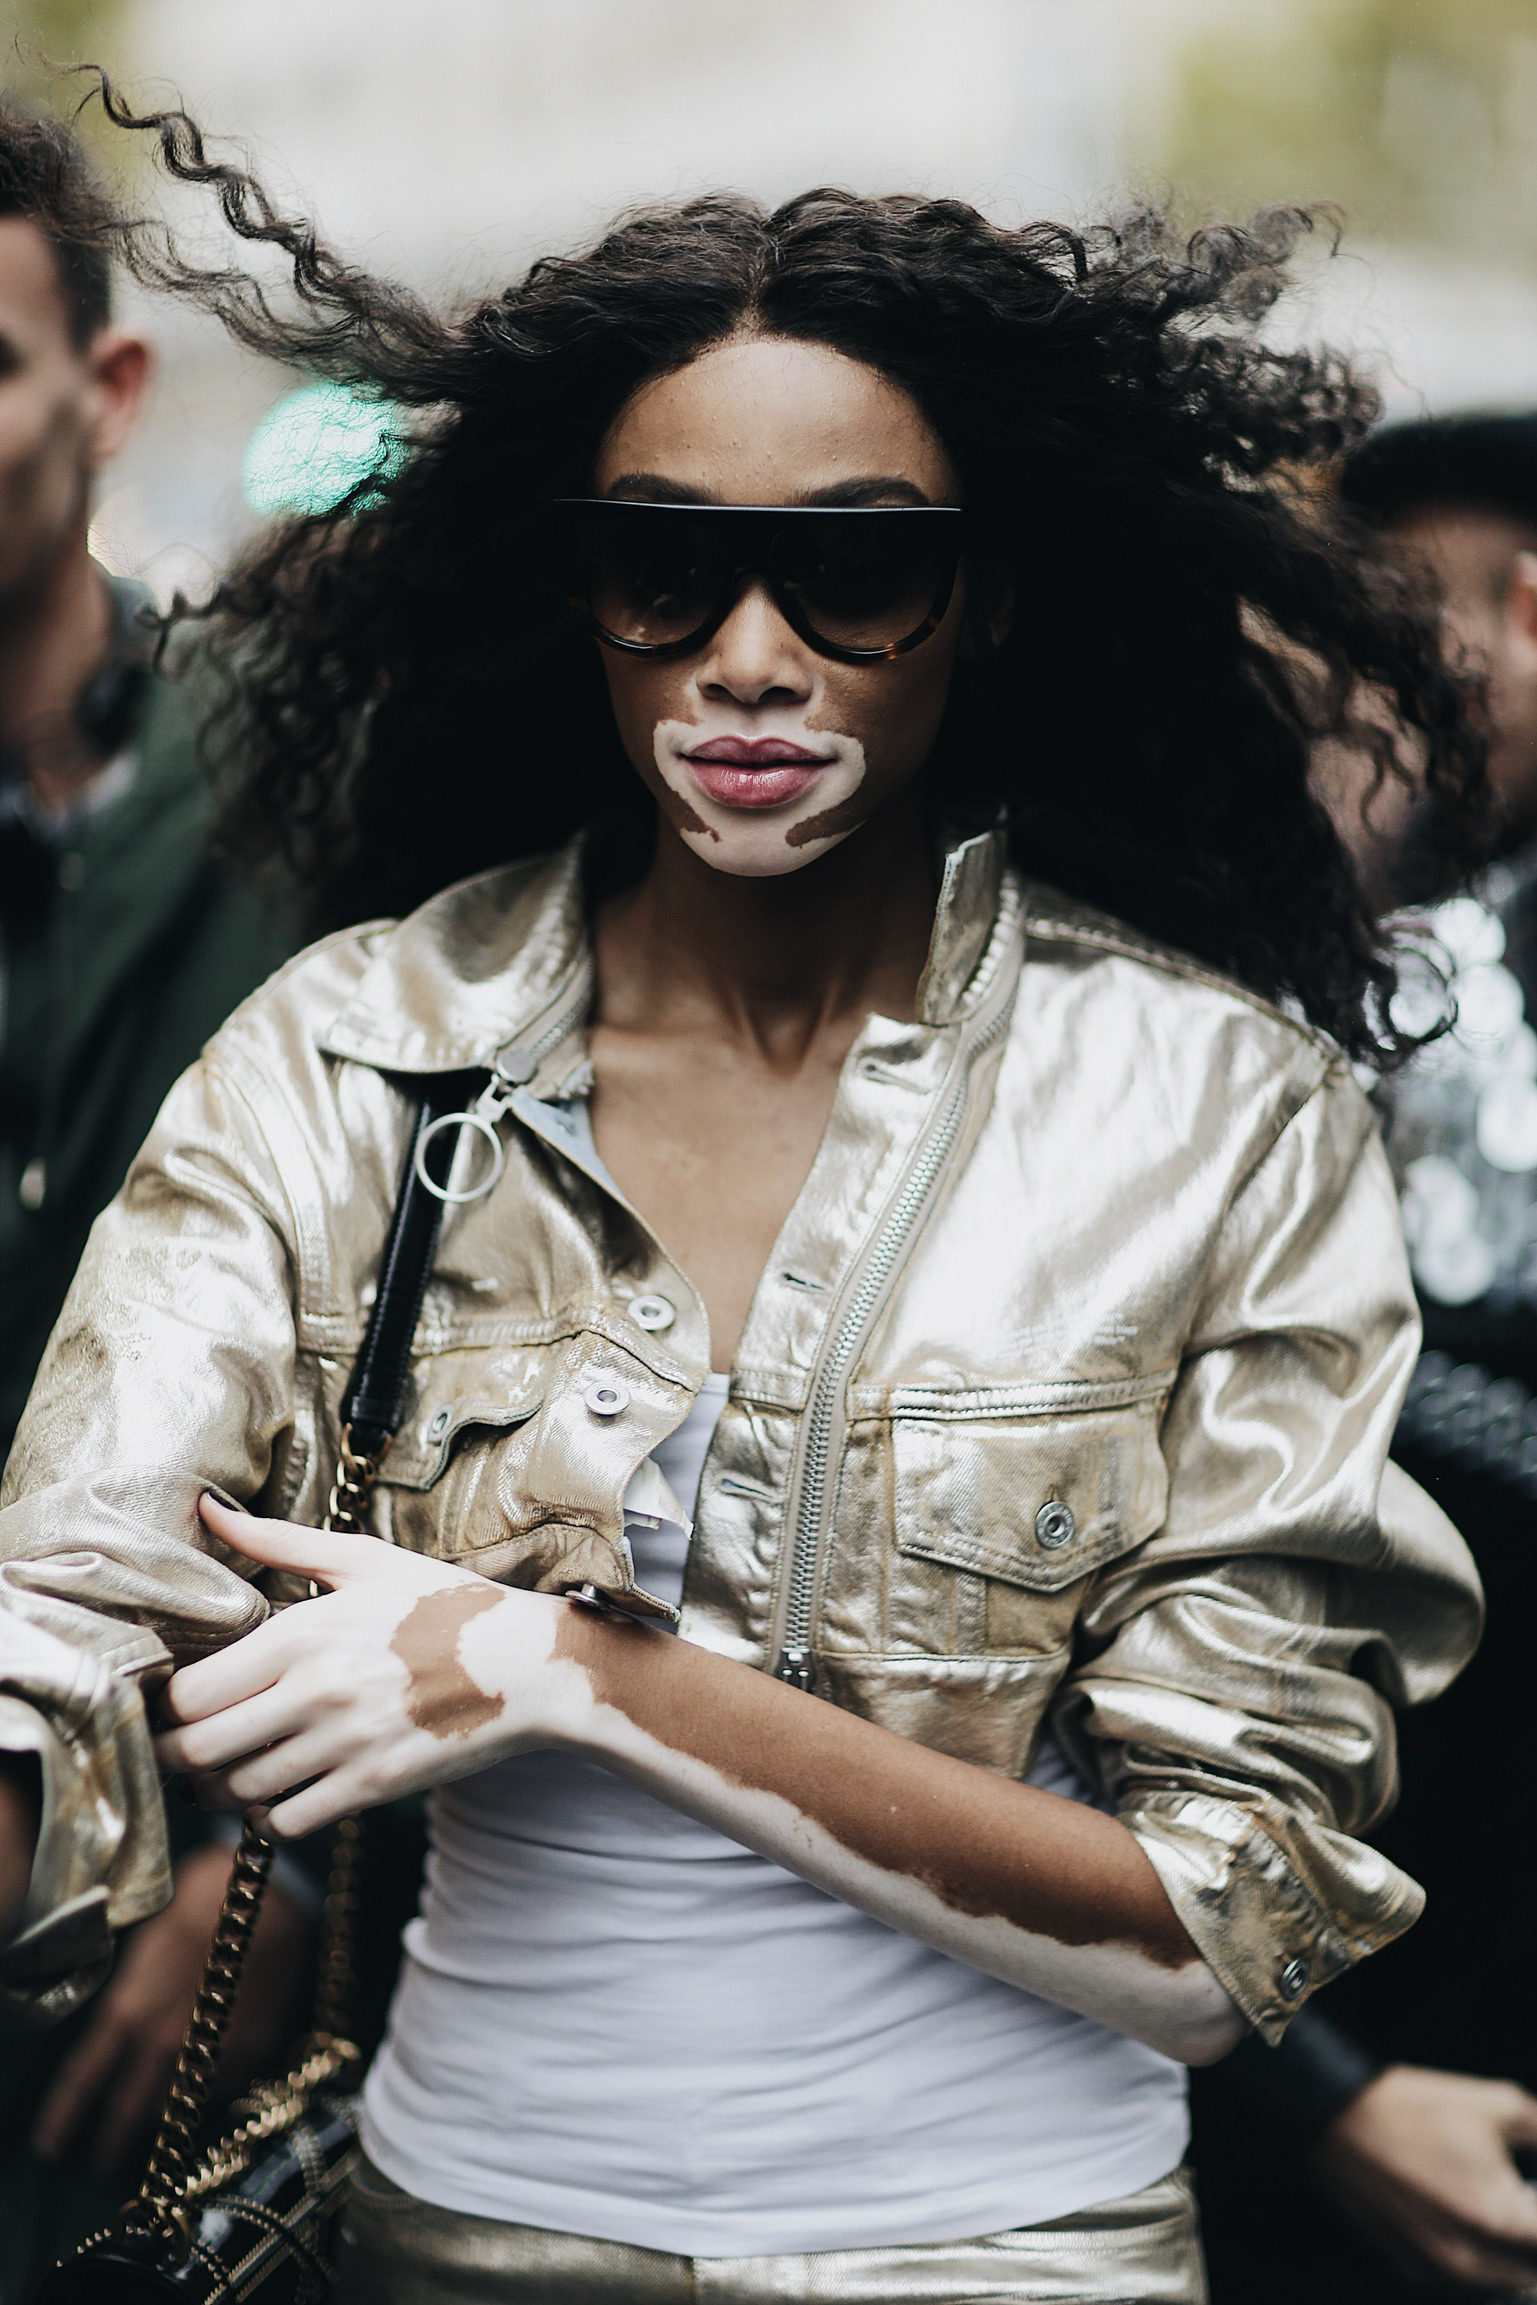 Street Style during Paris Fashion Week: Winnie Harlow